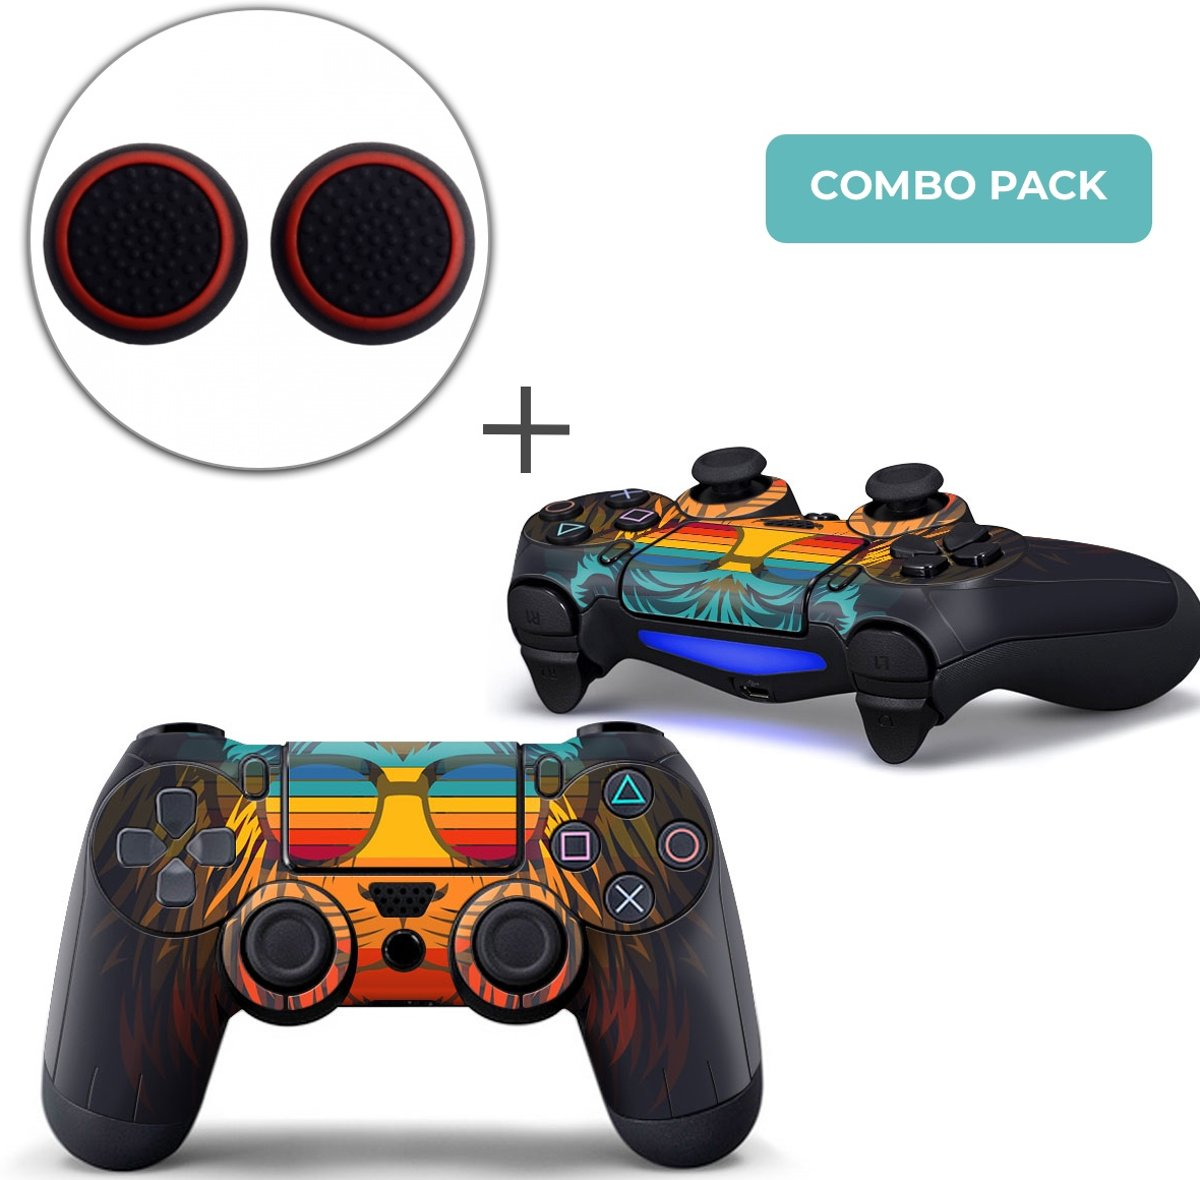 Retro Leeuw Combo Pack - PS4 Controller Skins PlayStation Stickers + Thumb Grips